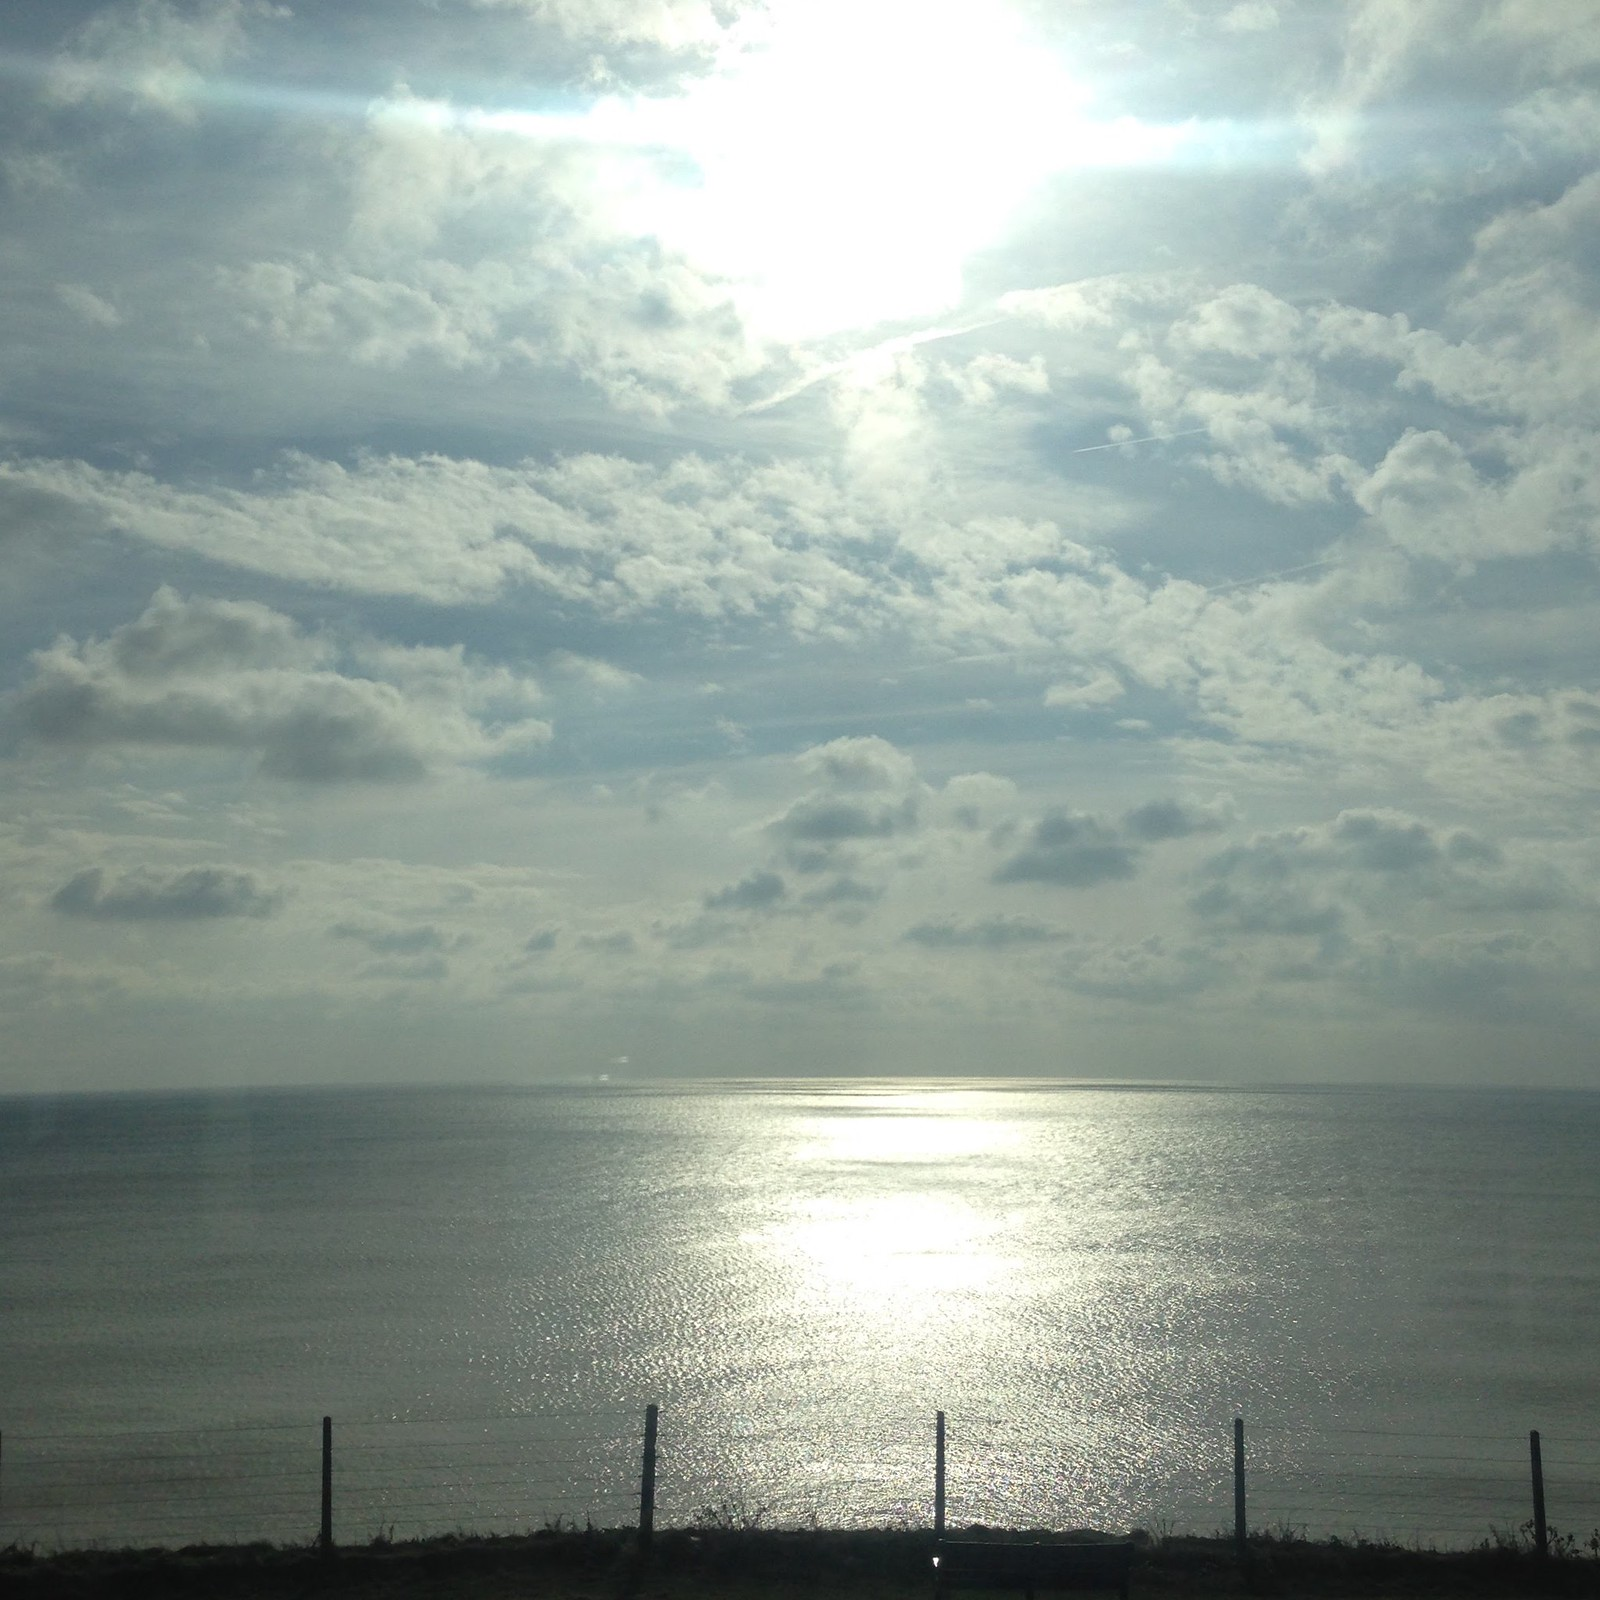 the sea from the bus on a sunny day